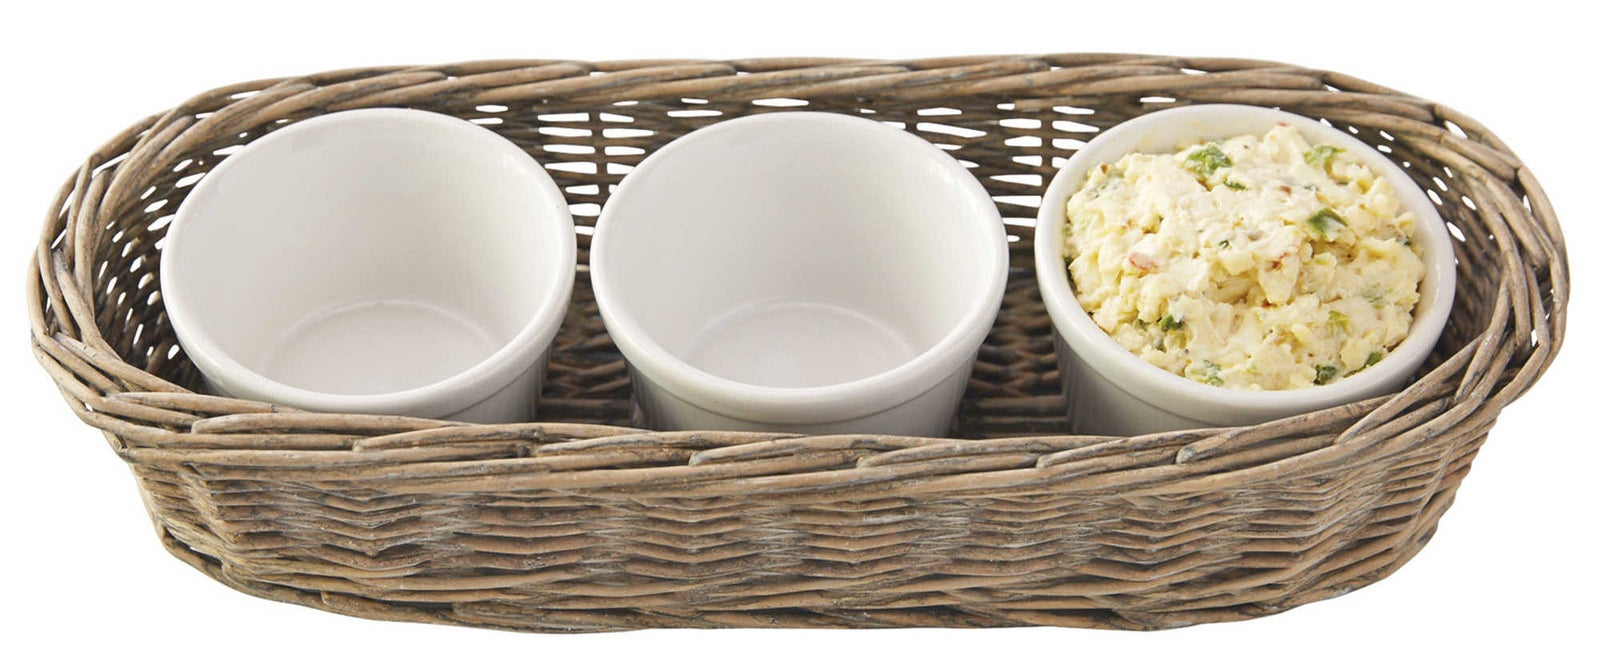 A BPA-free mini dip set because everyone knows that variety is the spice of life.